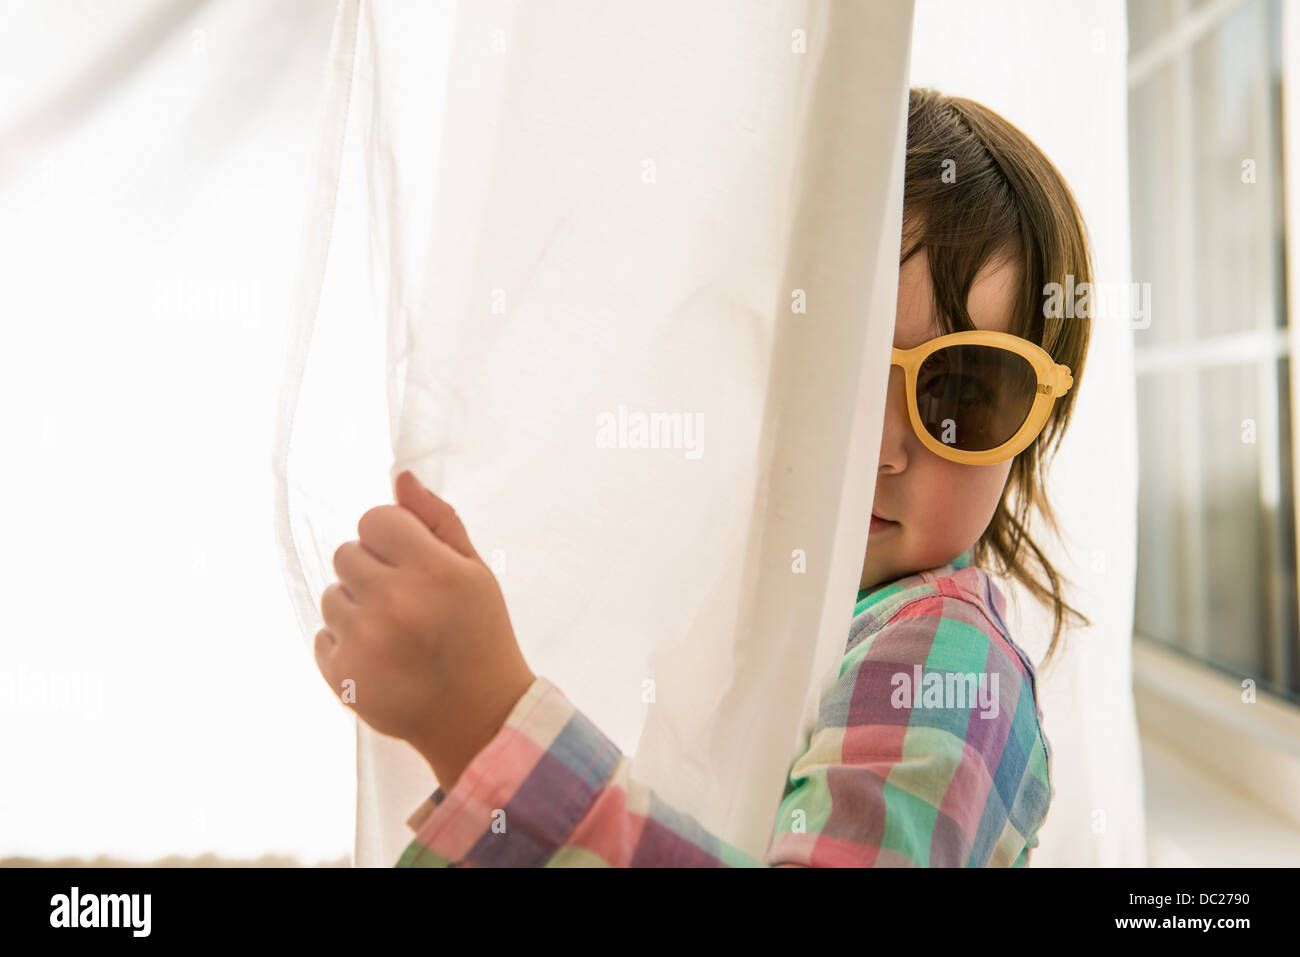 Girl peering round curtain wearing sunglasses - Stock Image